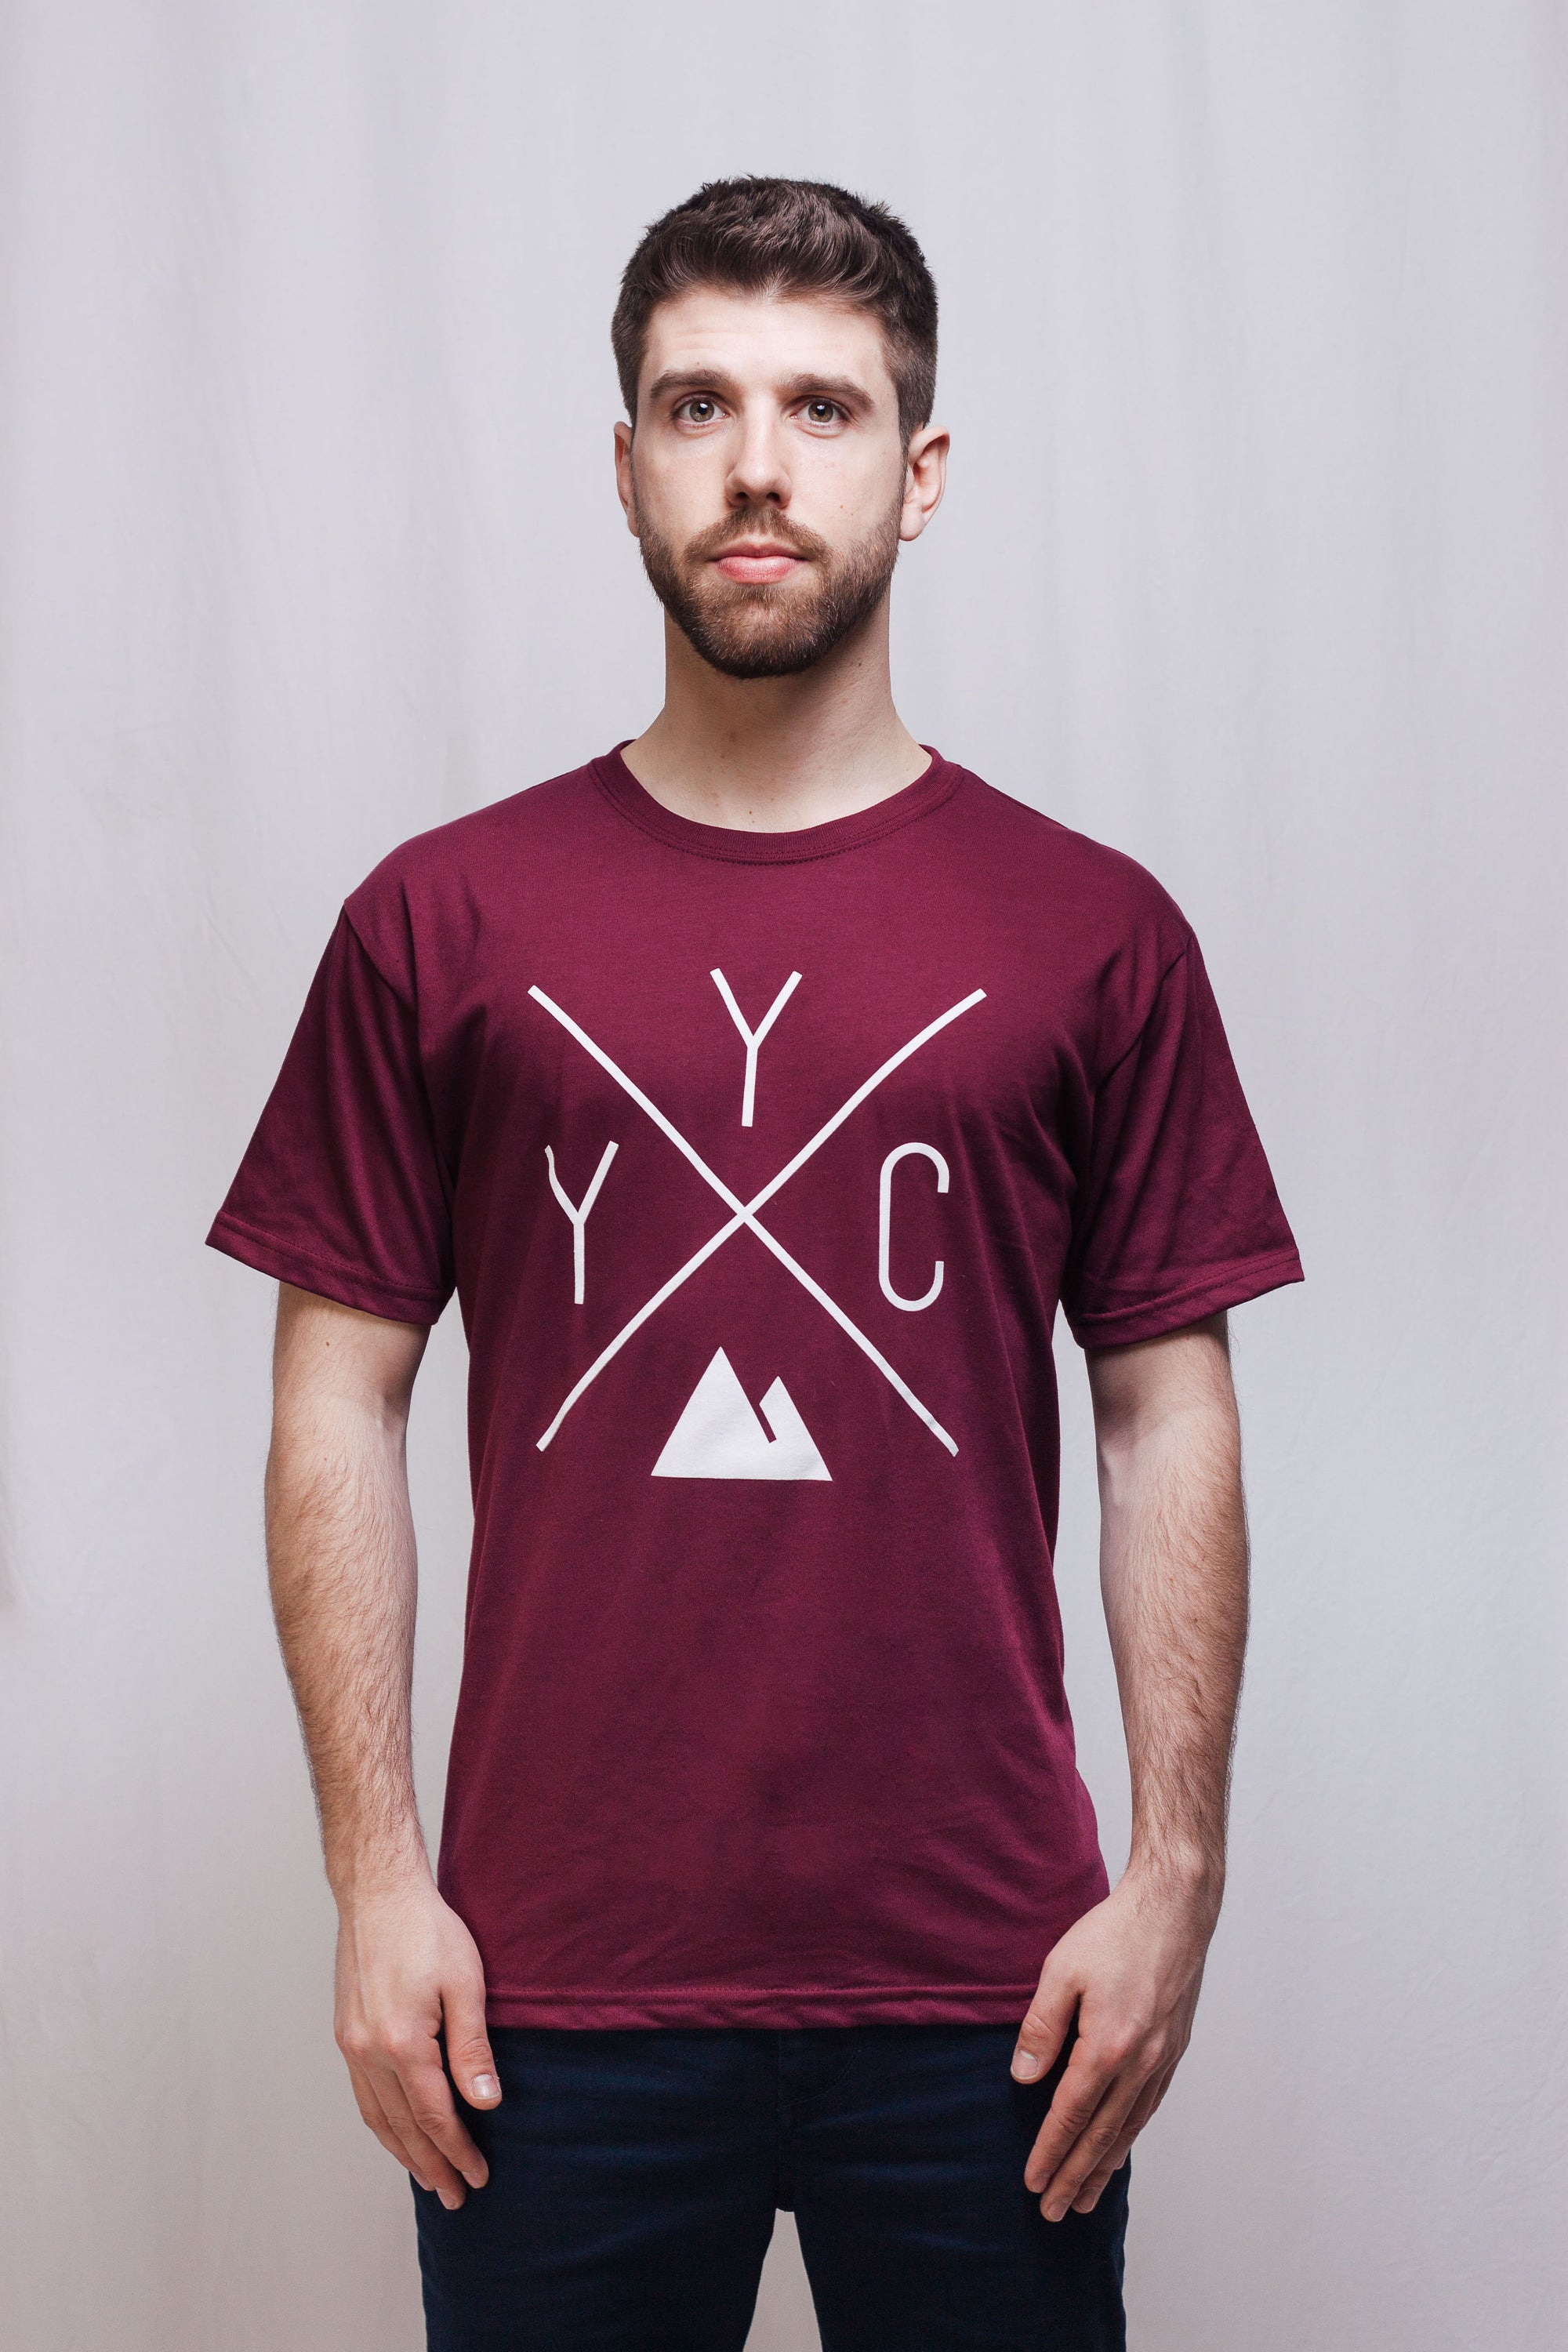 YYC T-Shirt - Maroon 🇨🇦 - Local Laundry